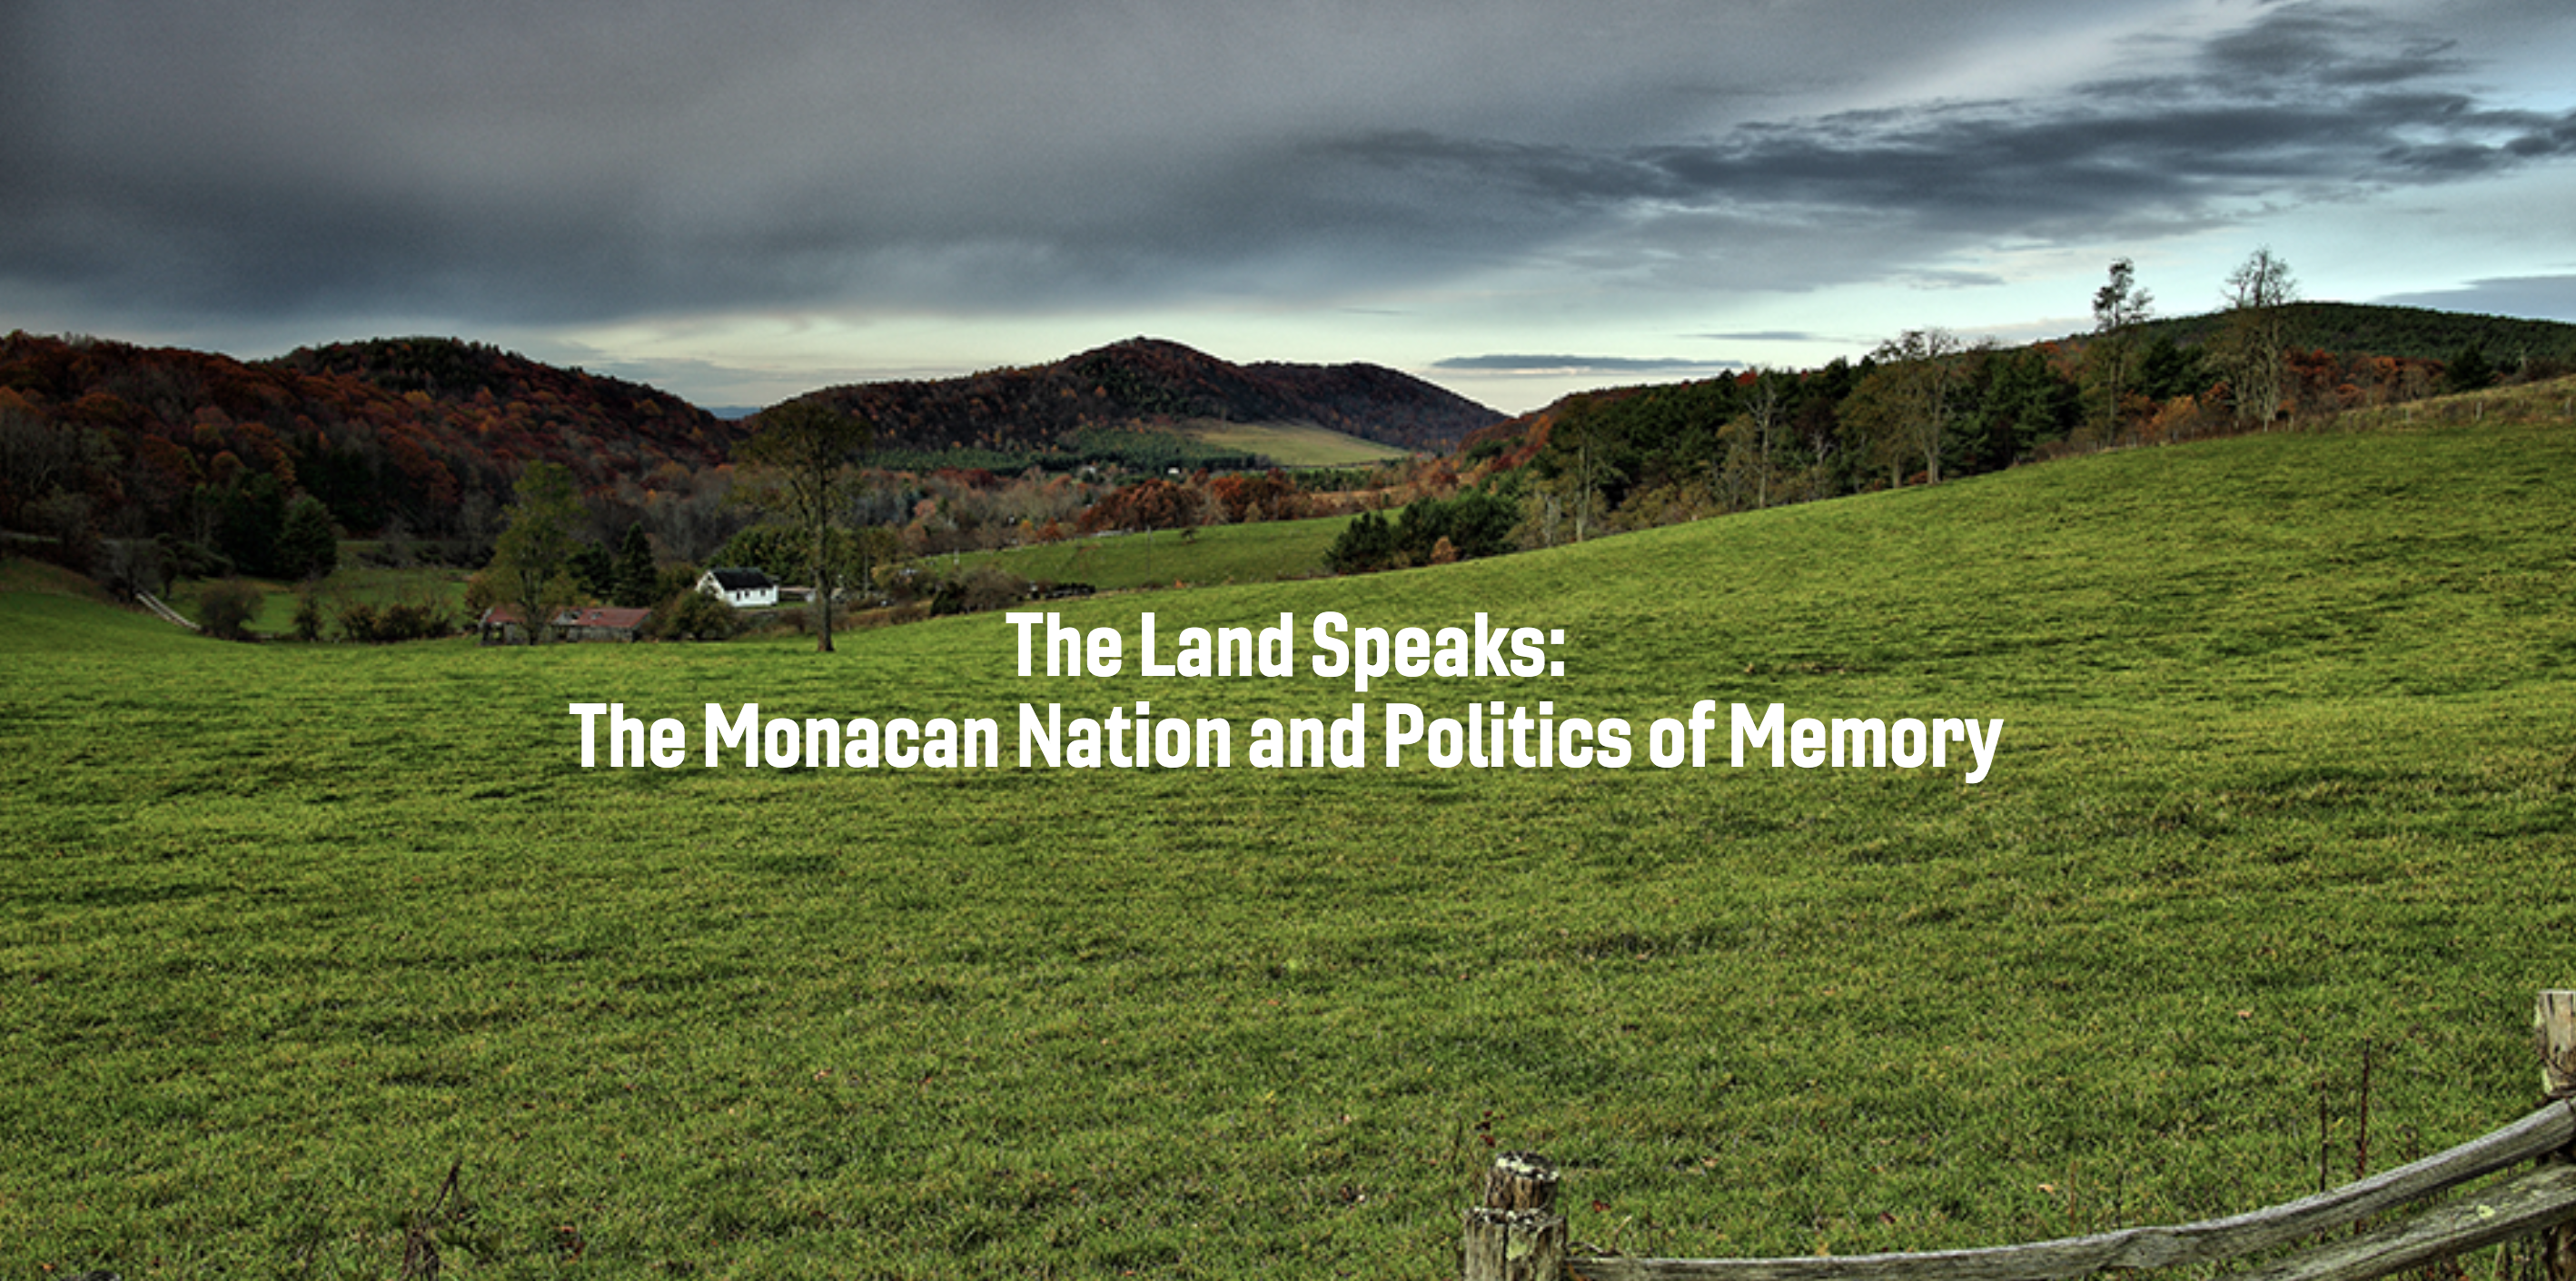 The Land Speaks: The Monacan Nation and Politics of Memory